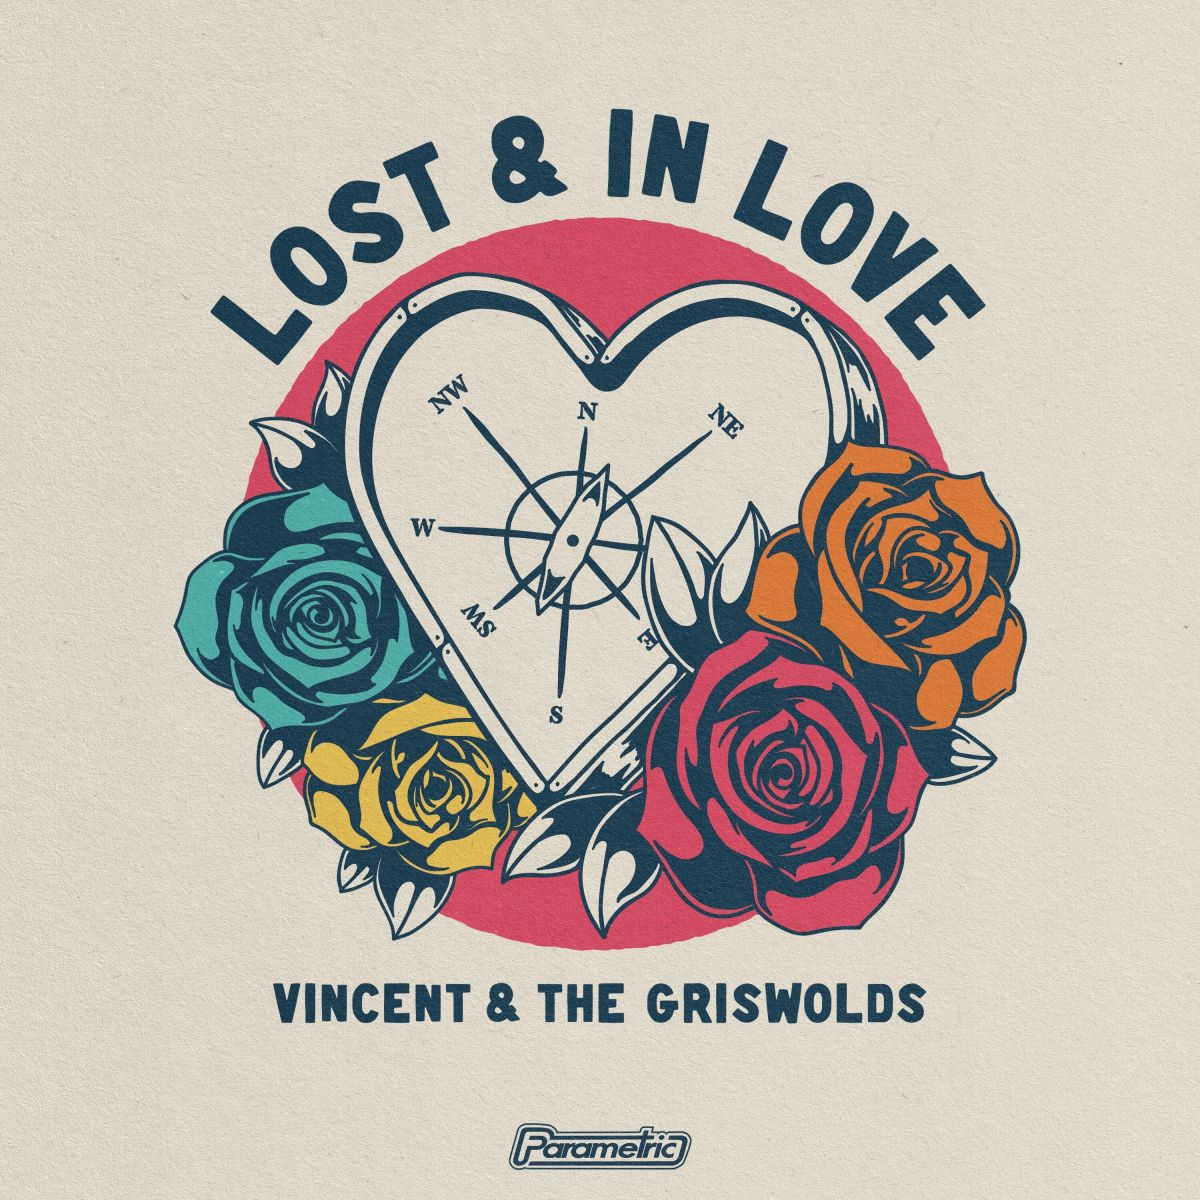 Vincent The Griswolds Lost & In Love Artwork